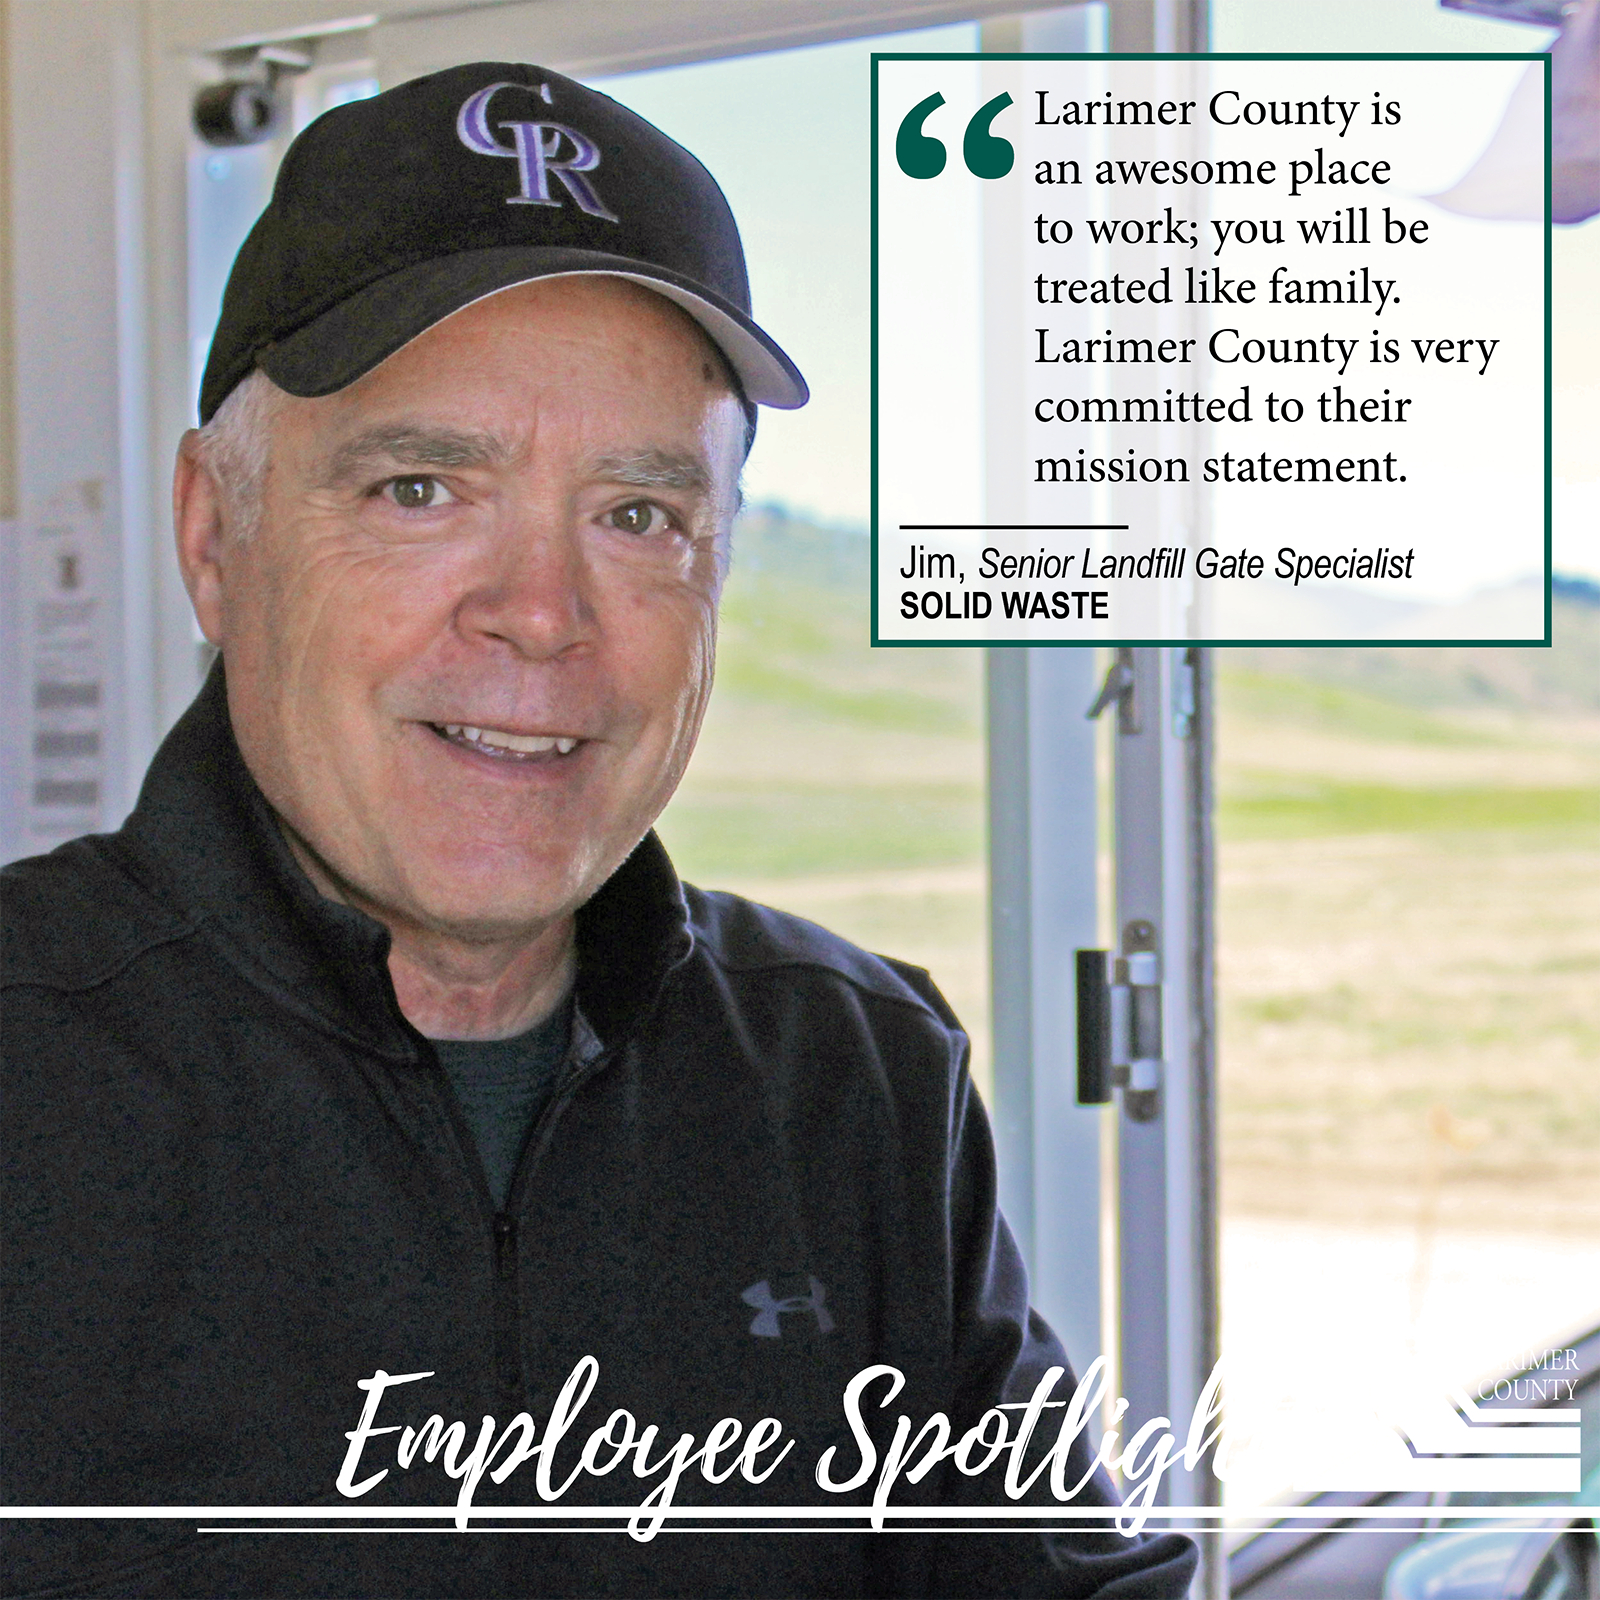 "Image 23: ""The Solid Waste department is an awesome place to work; everyone is treated like family. Larimer County is very committed to their mission statement."""